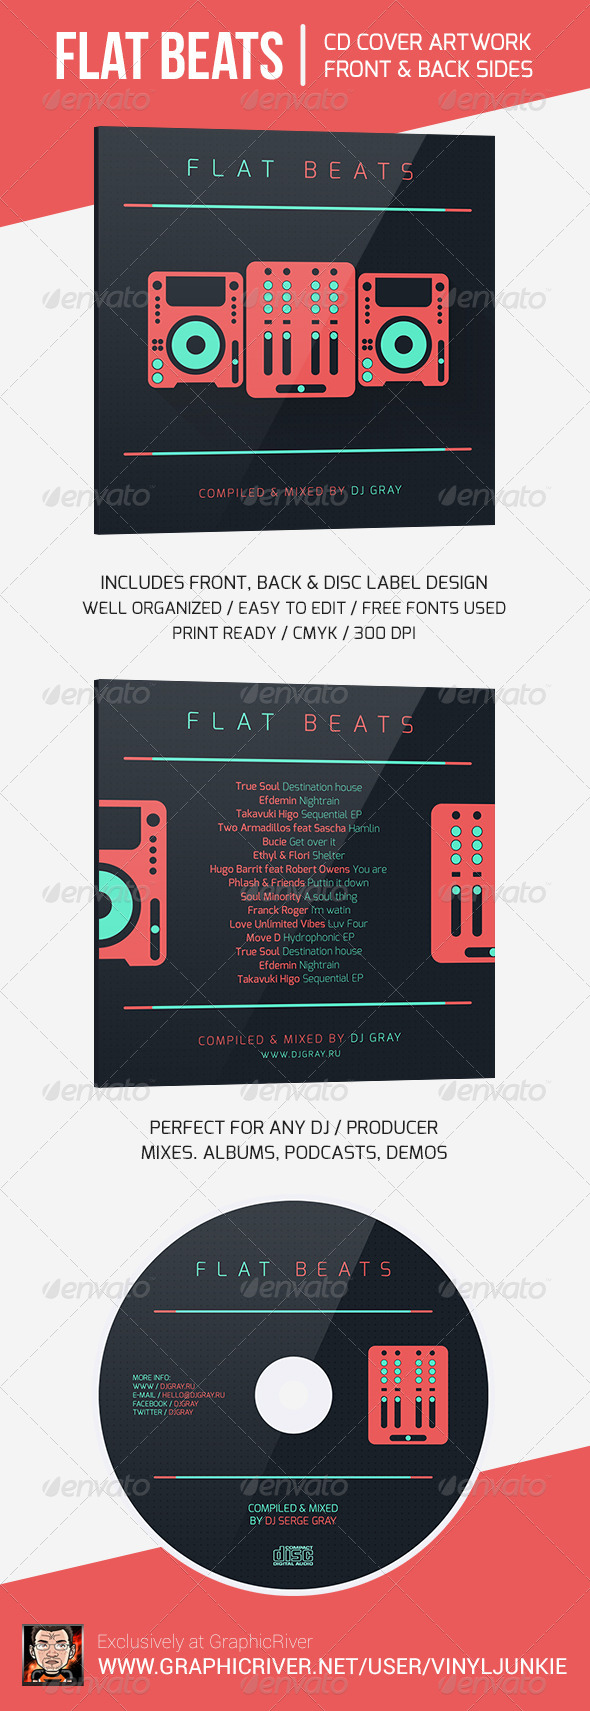 Flat Beats - DJ Mix CD Cover Artwork Template - CD & DVD Artwork Print Templates